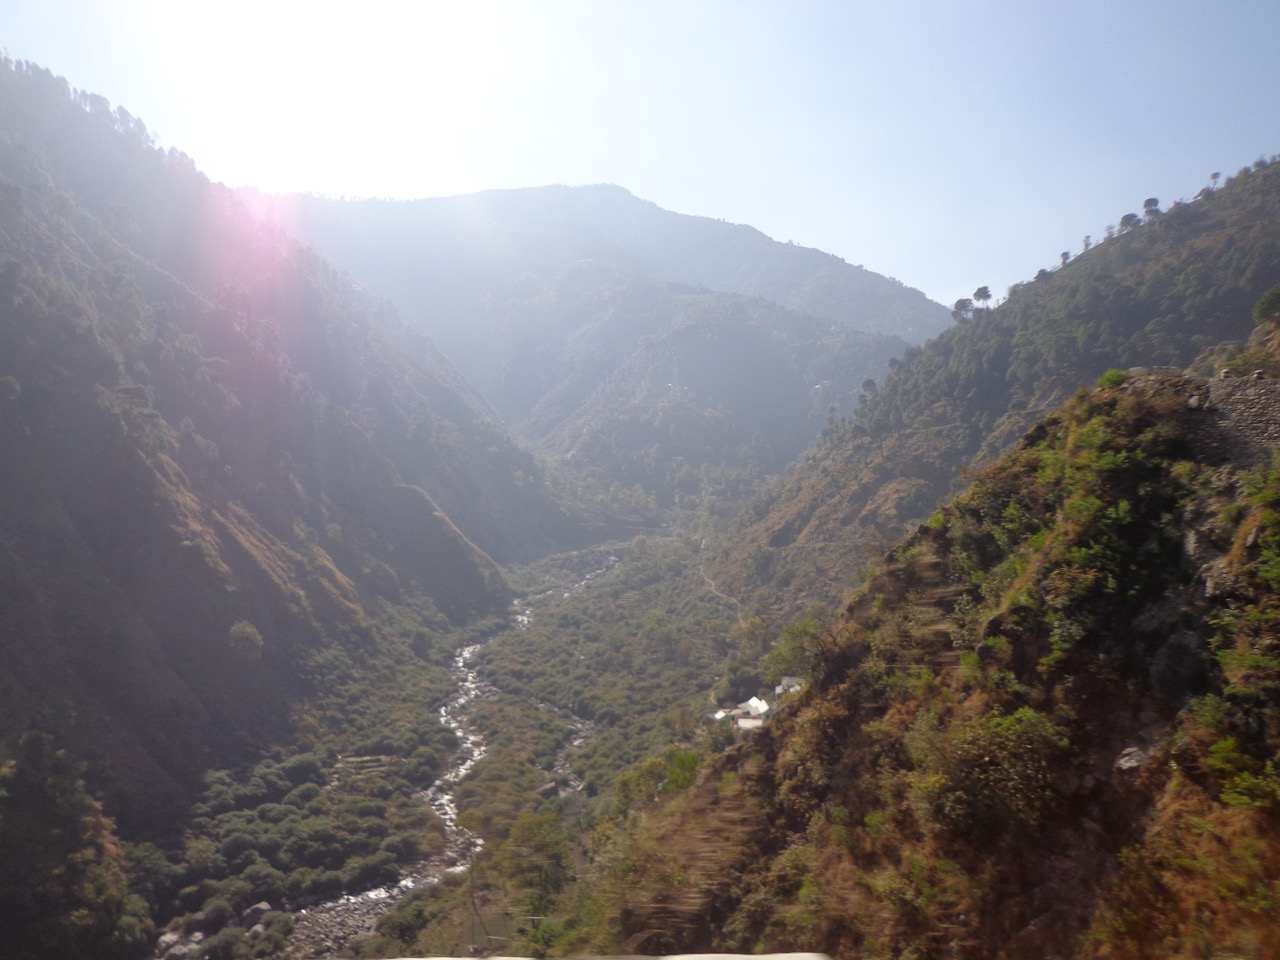 The Ravi river cuts right through the mountains.